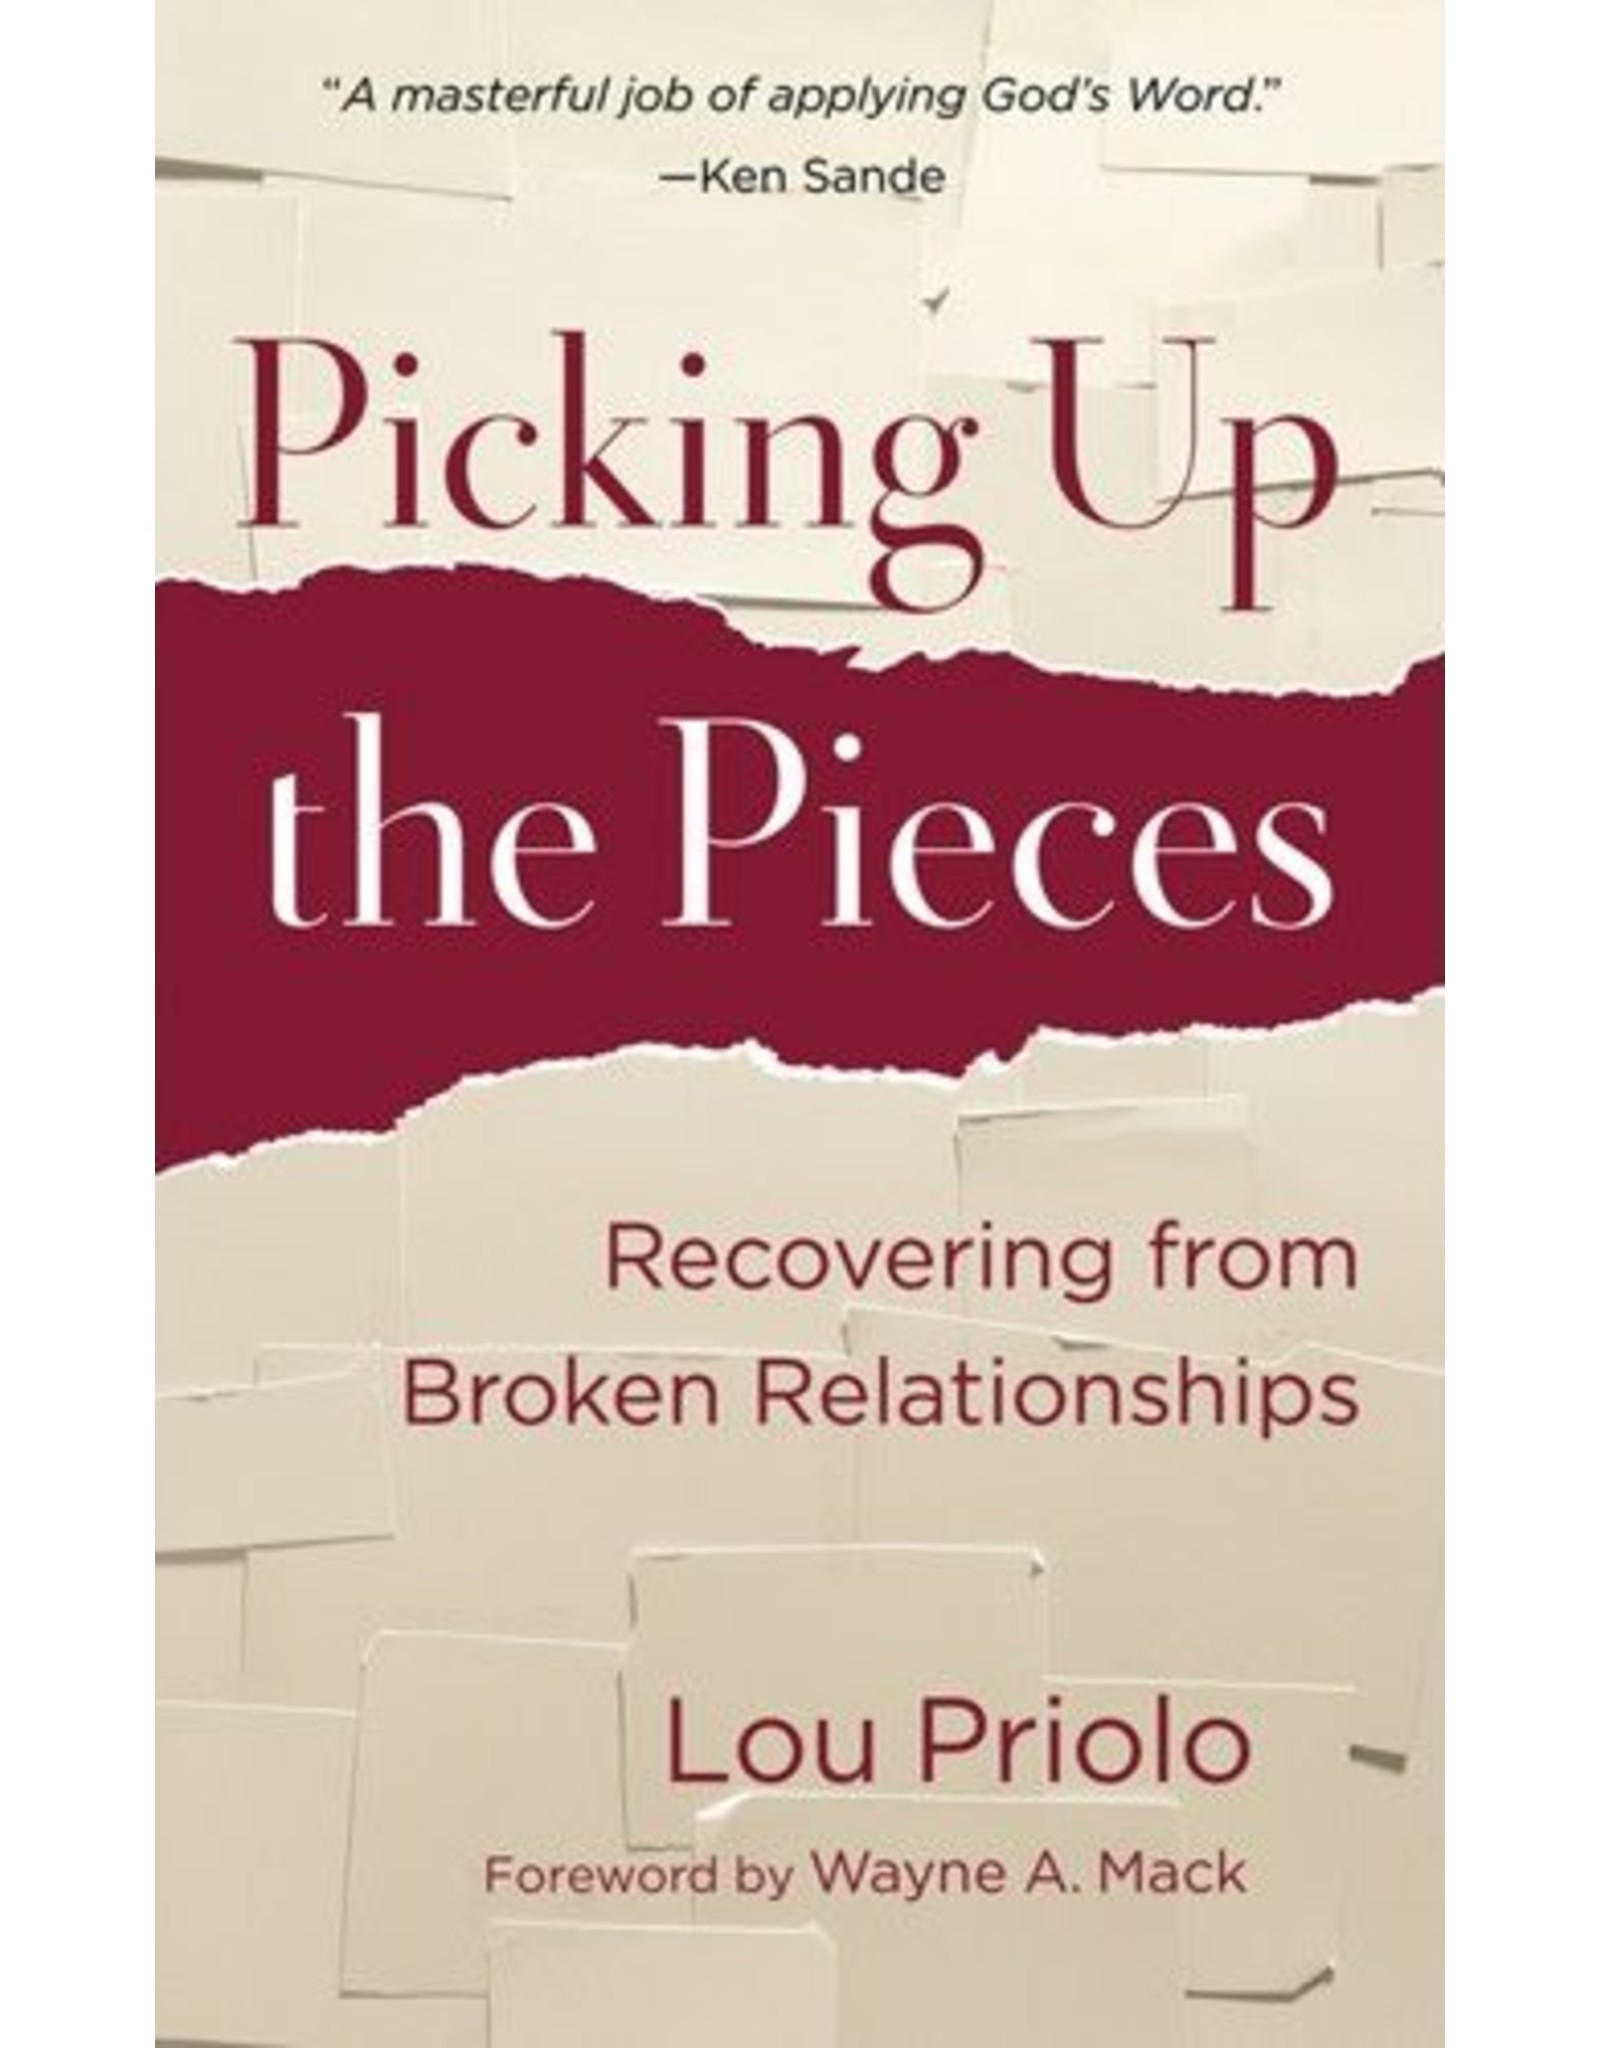 P&R Publishing (Presbyterian and Reformed) Picking Up the Pieces